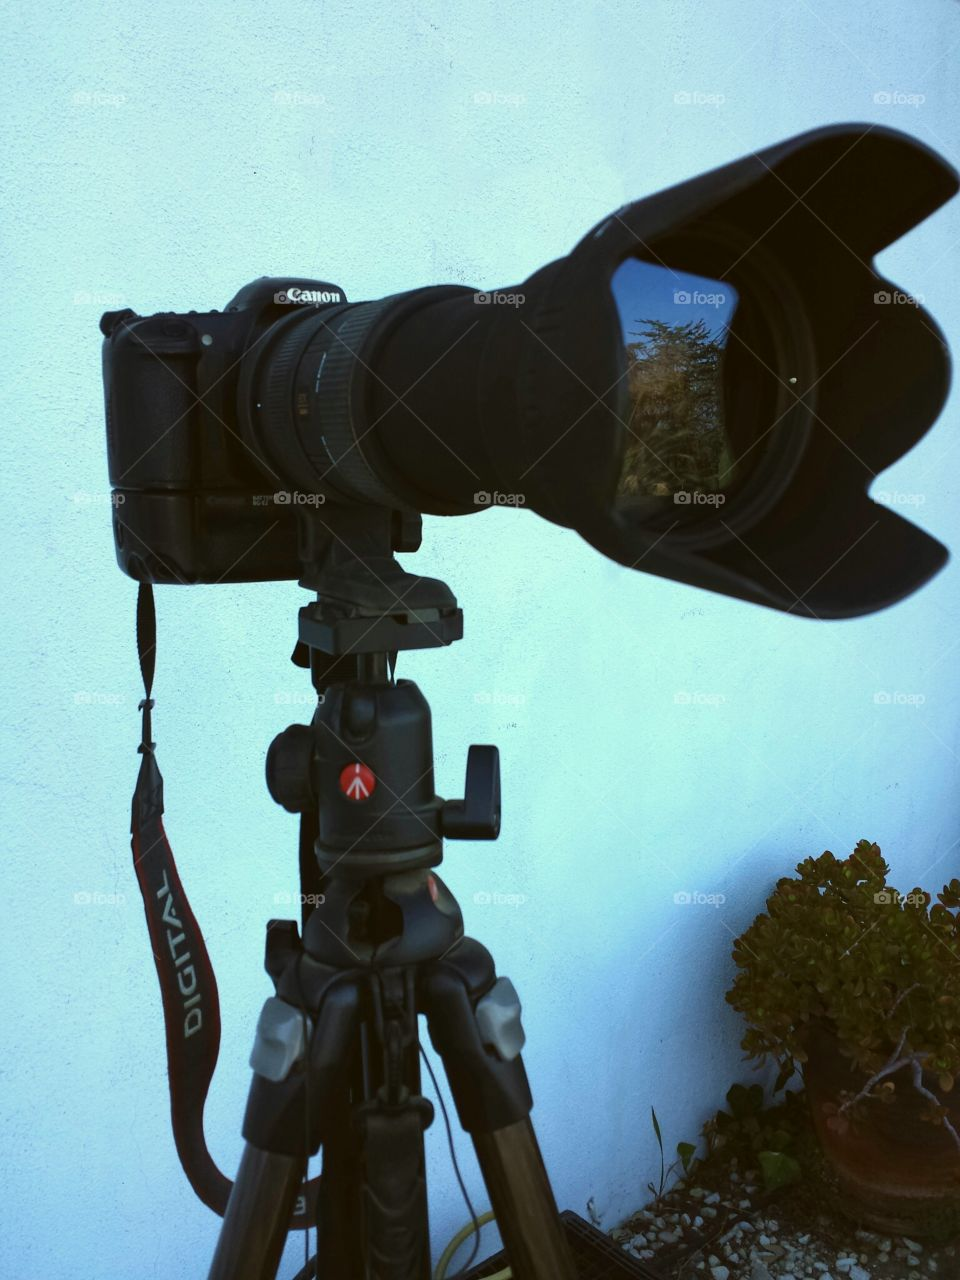 Canon with a telephoto lens on a Manfrotto tripod